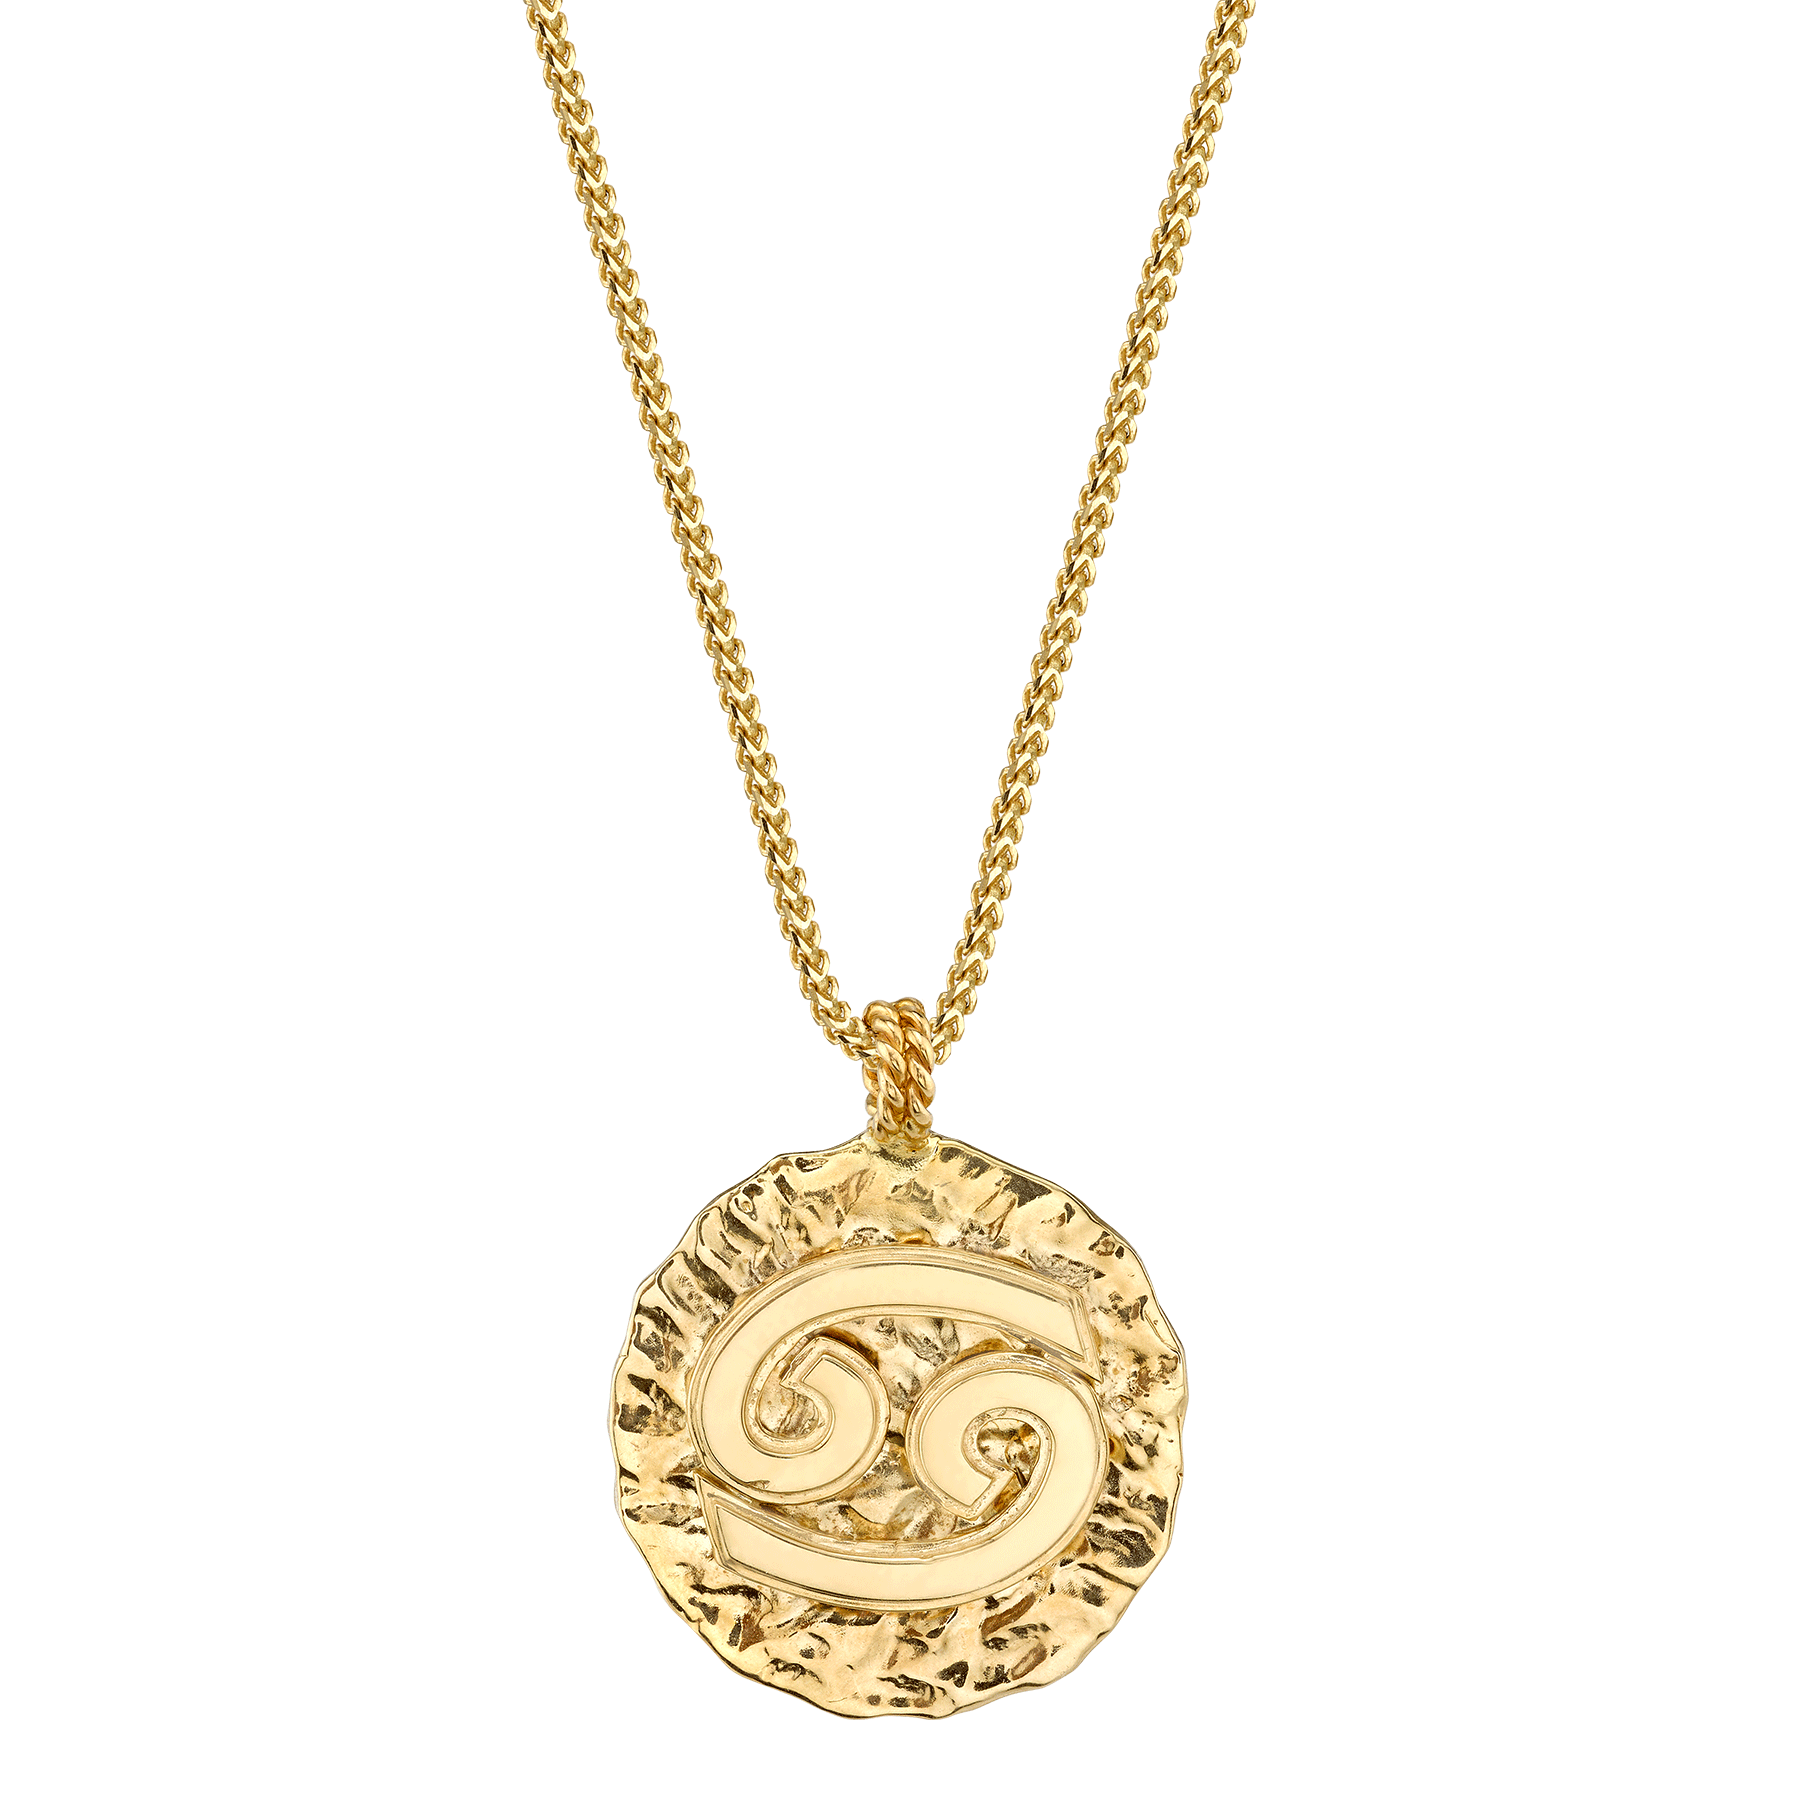 GOLD LARGE ZODIAC COIN PENDANT 22 INCHES